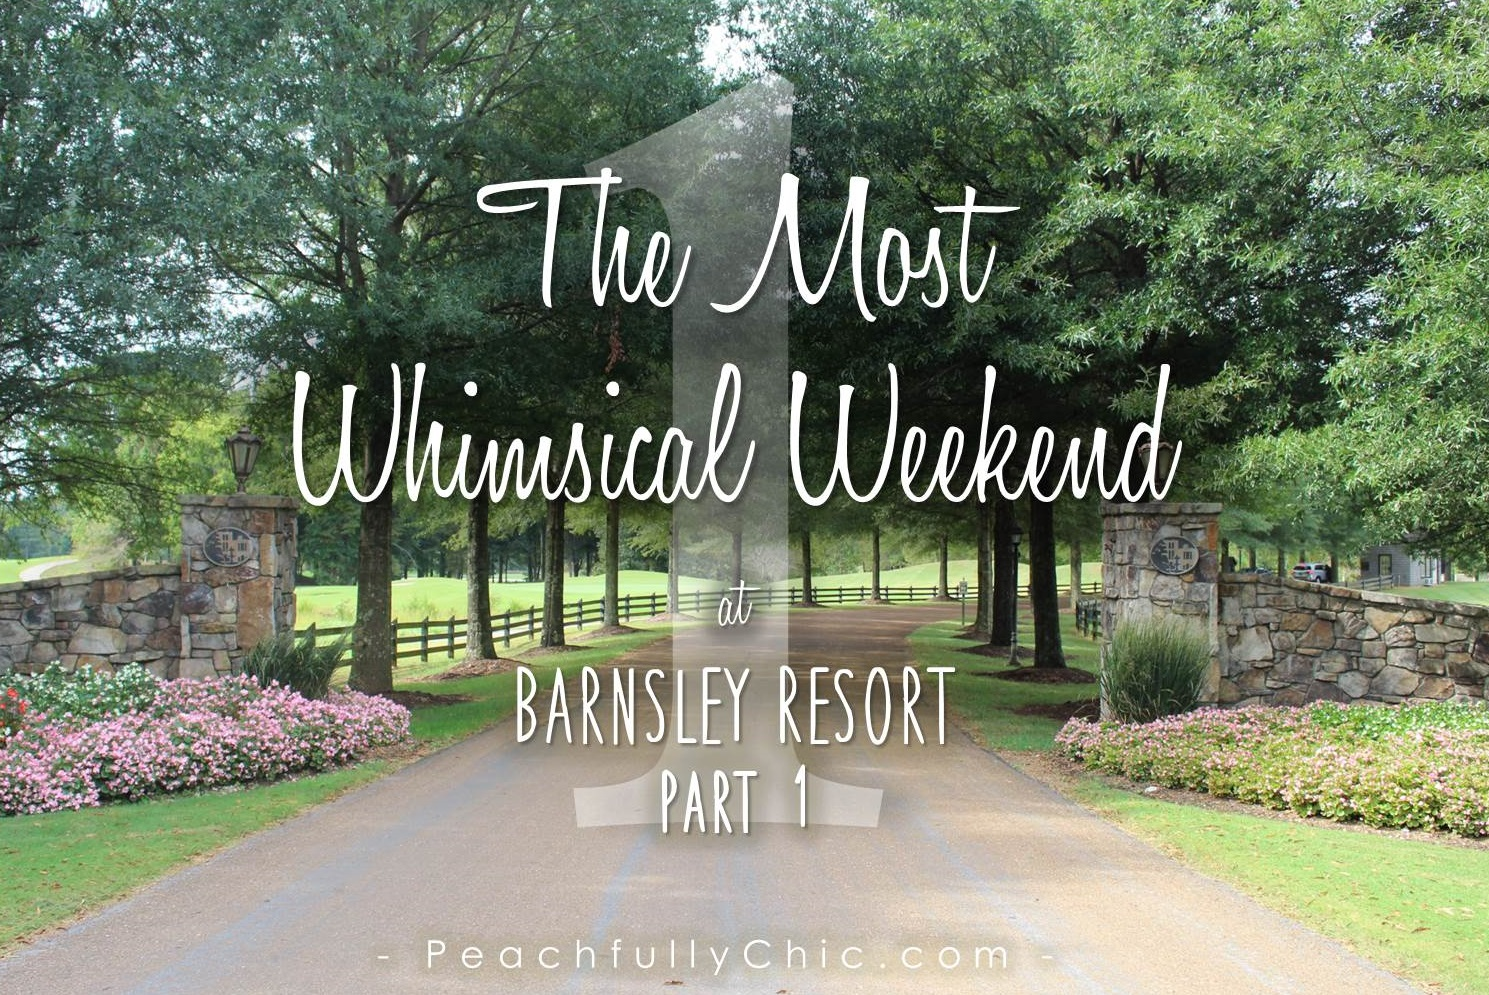 Bansley-Resort-Review-Peachfully-Chic-main-1